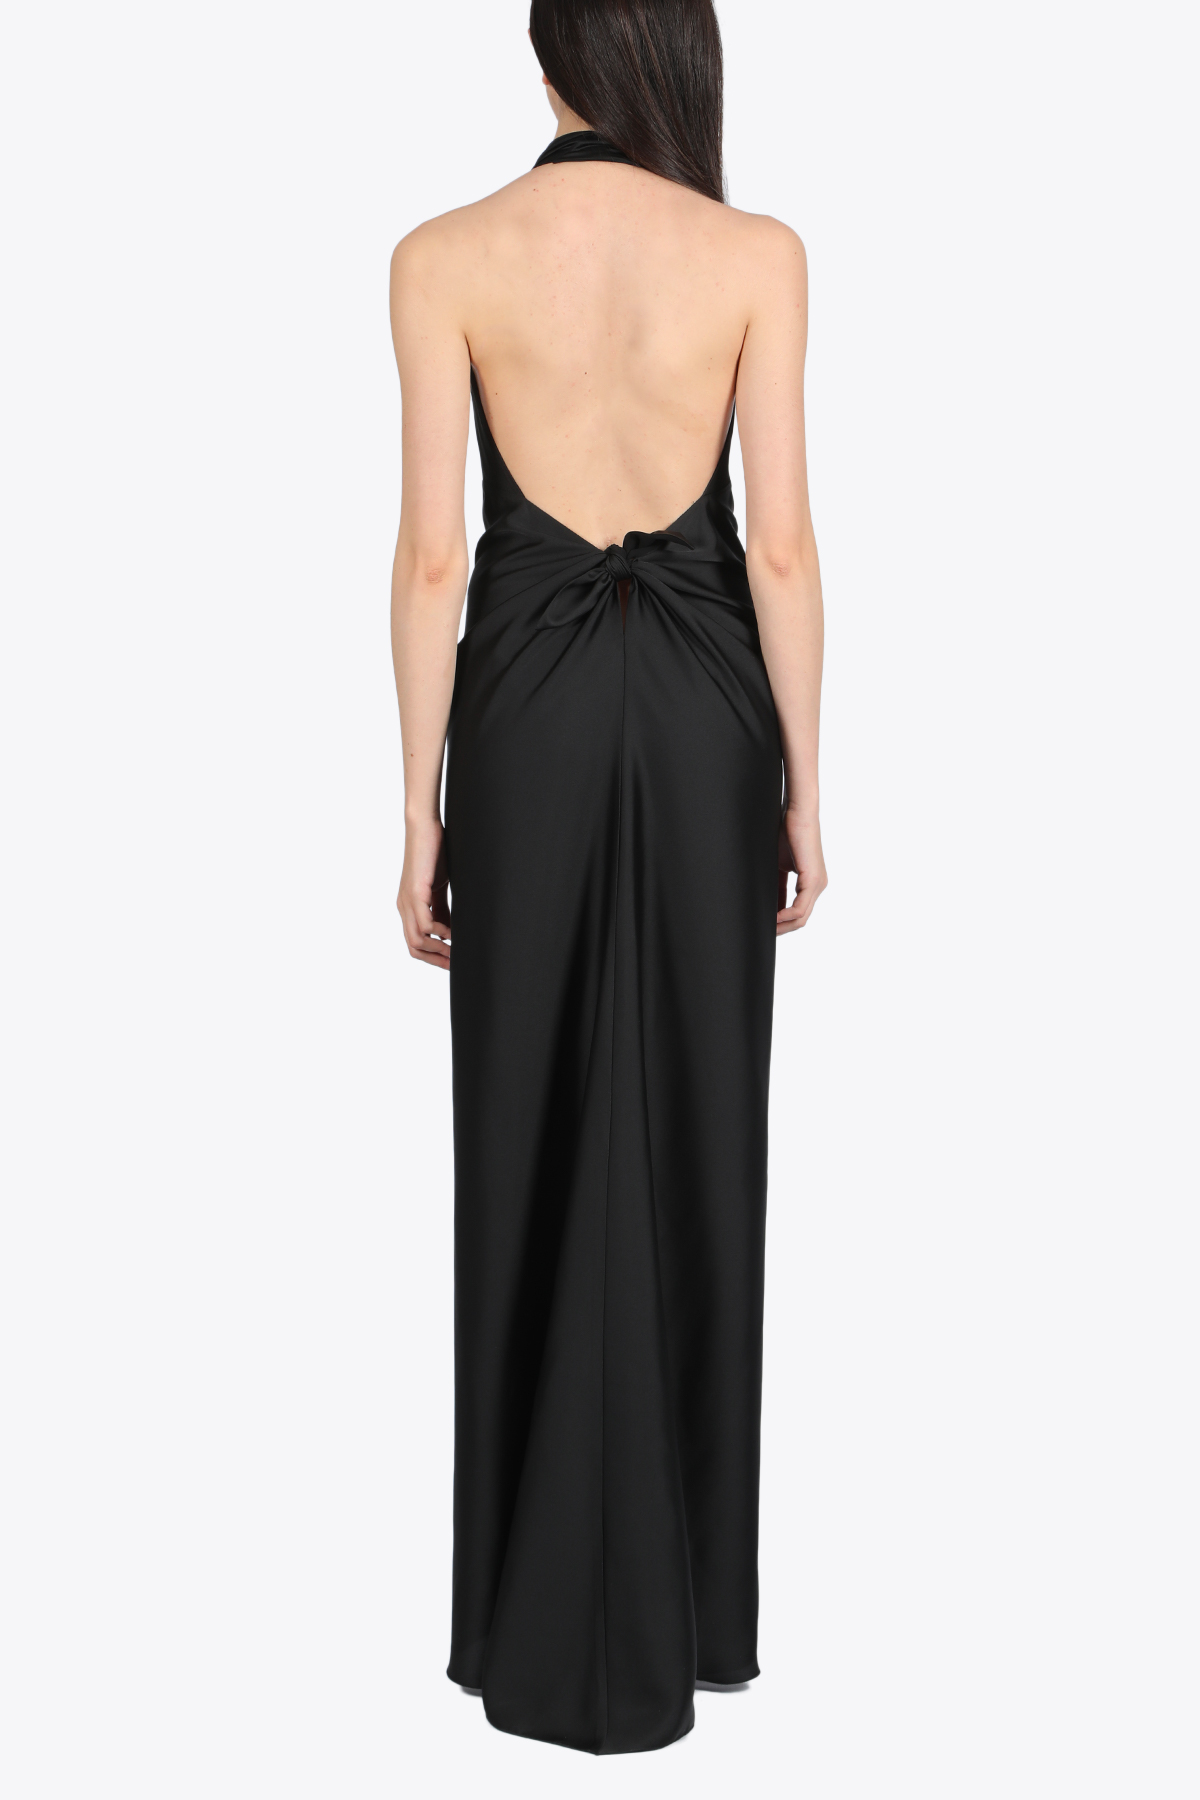 BACKLESS LONG DRESS